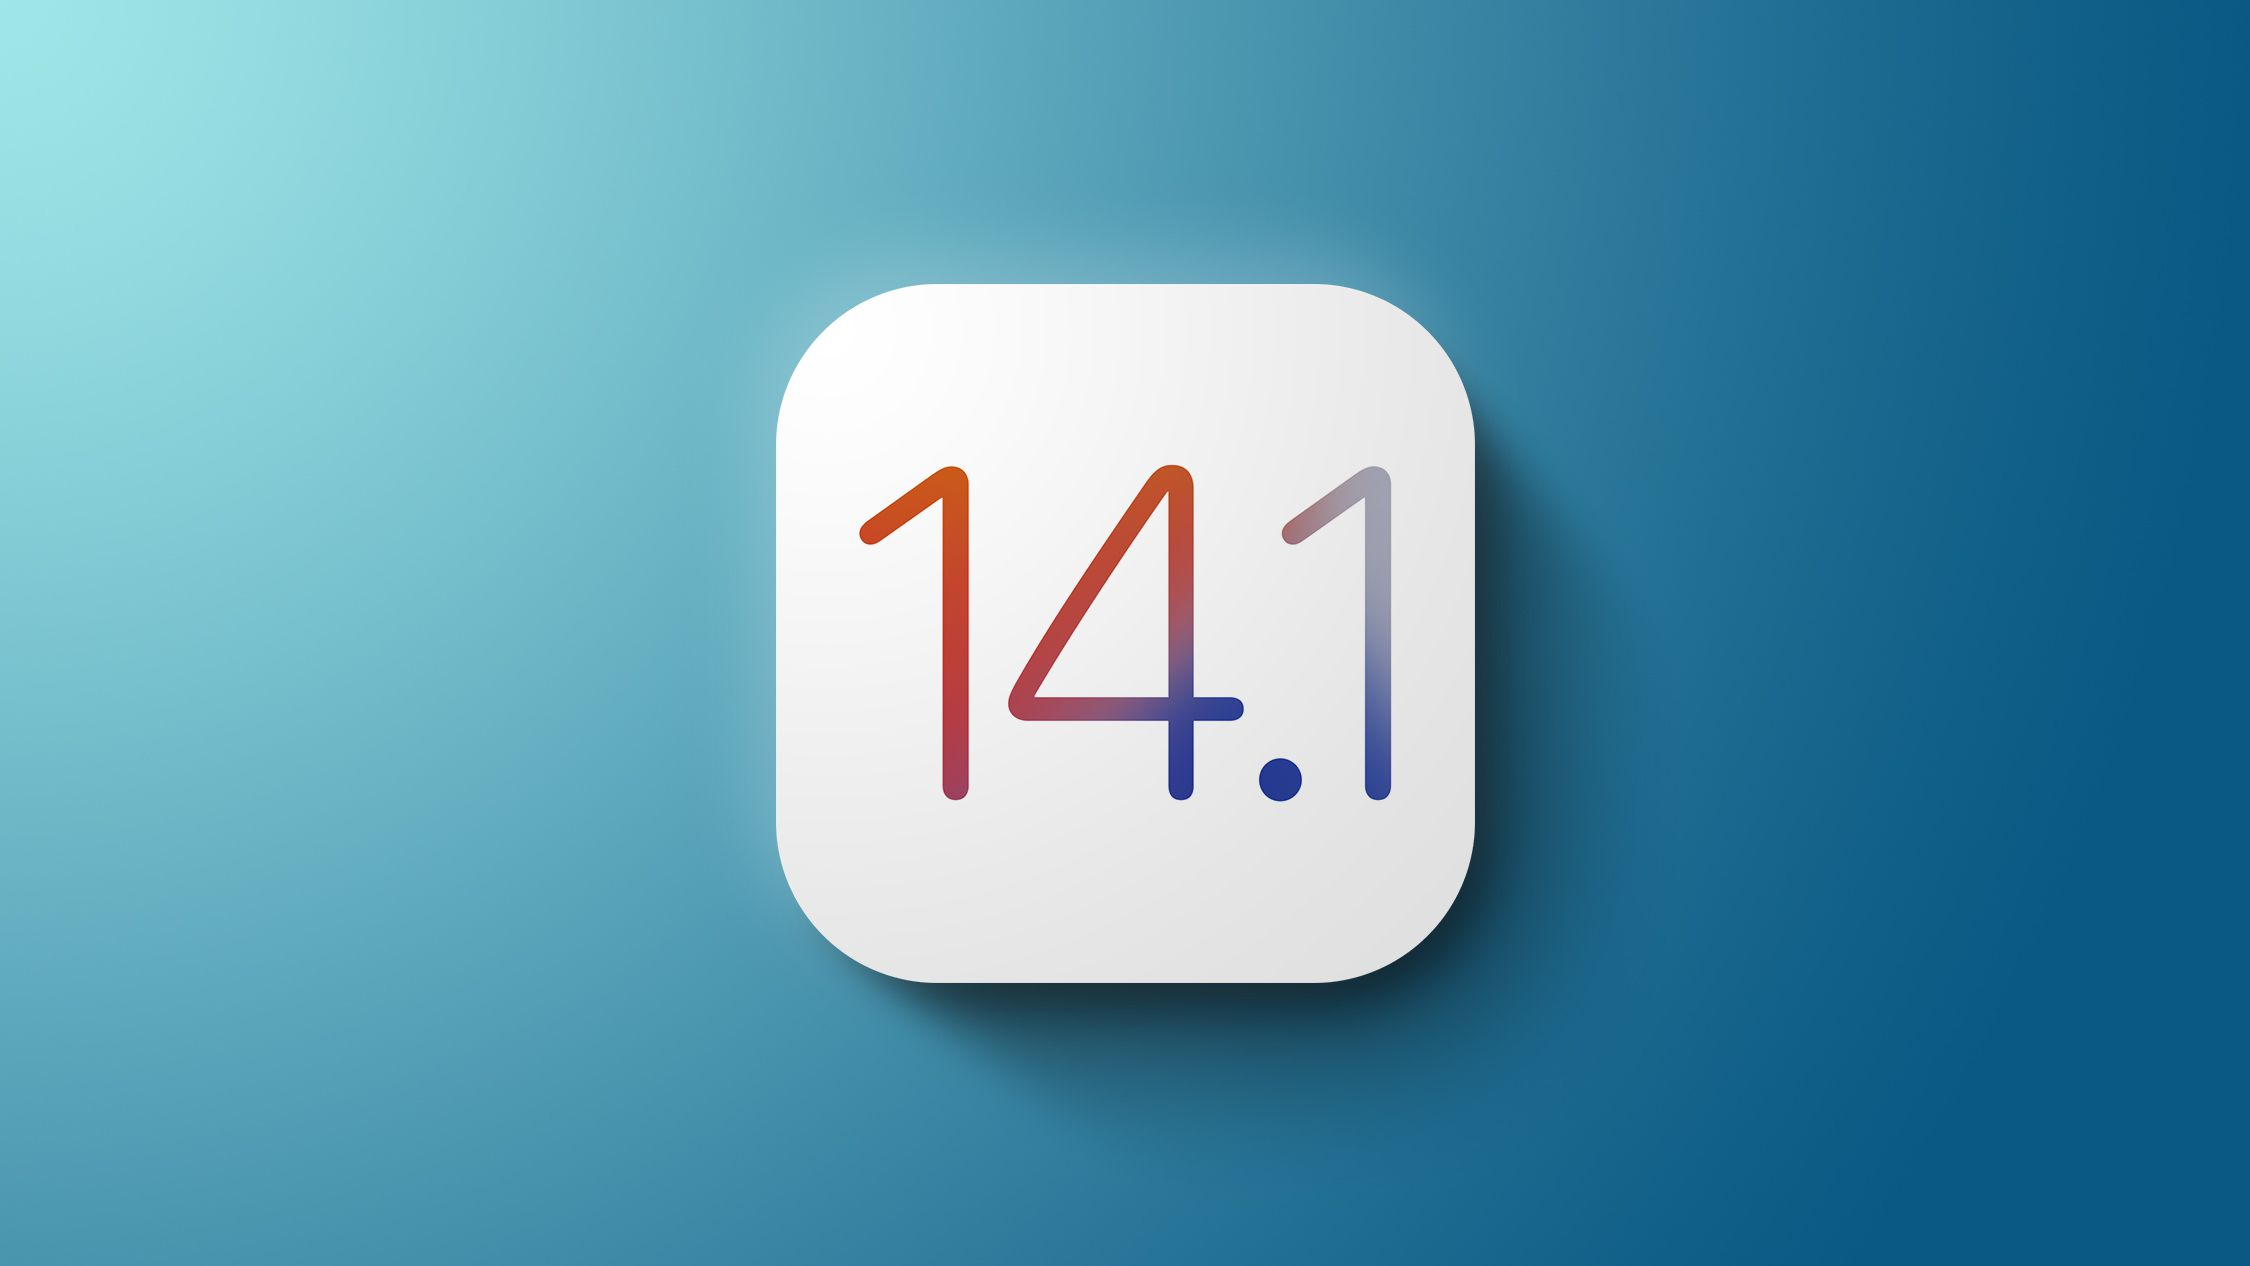 iOS 14.1 has Arrived - Go to Software Update menu